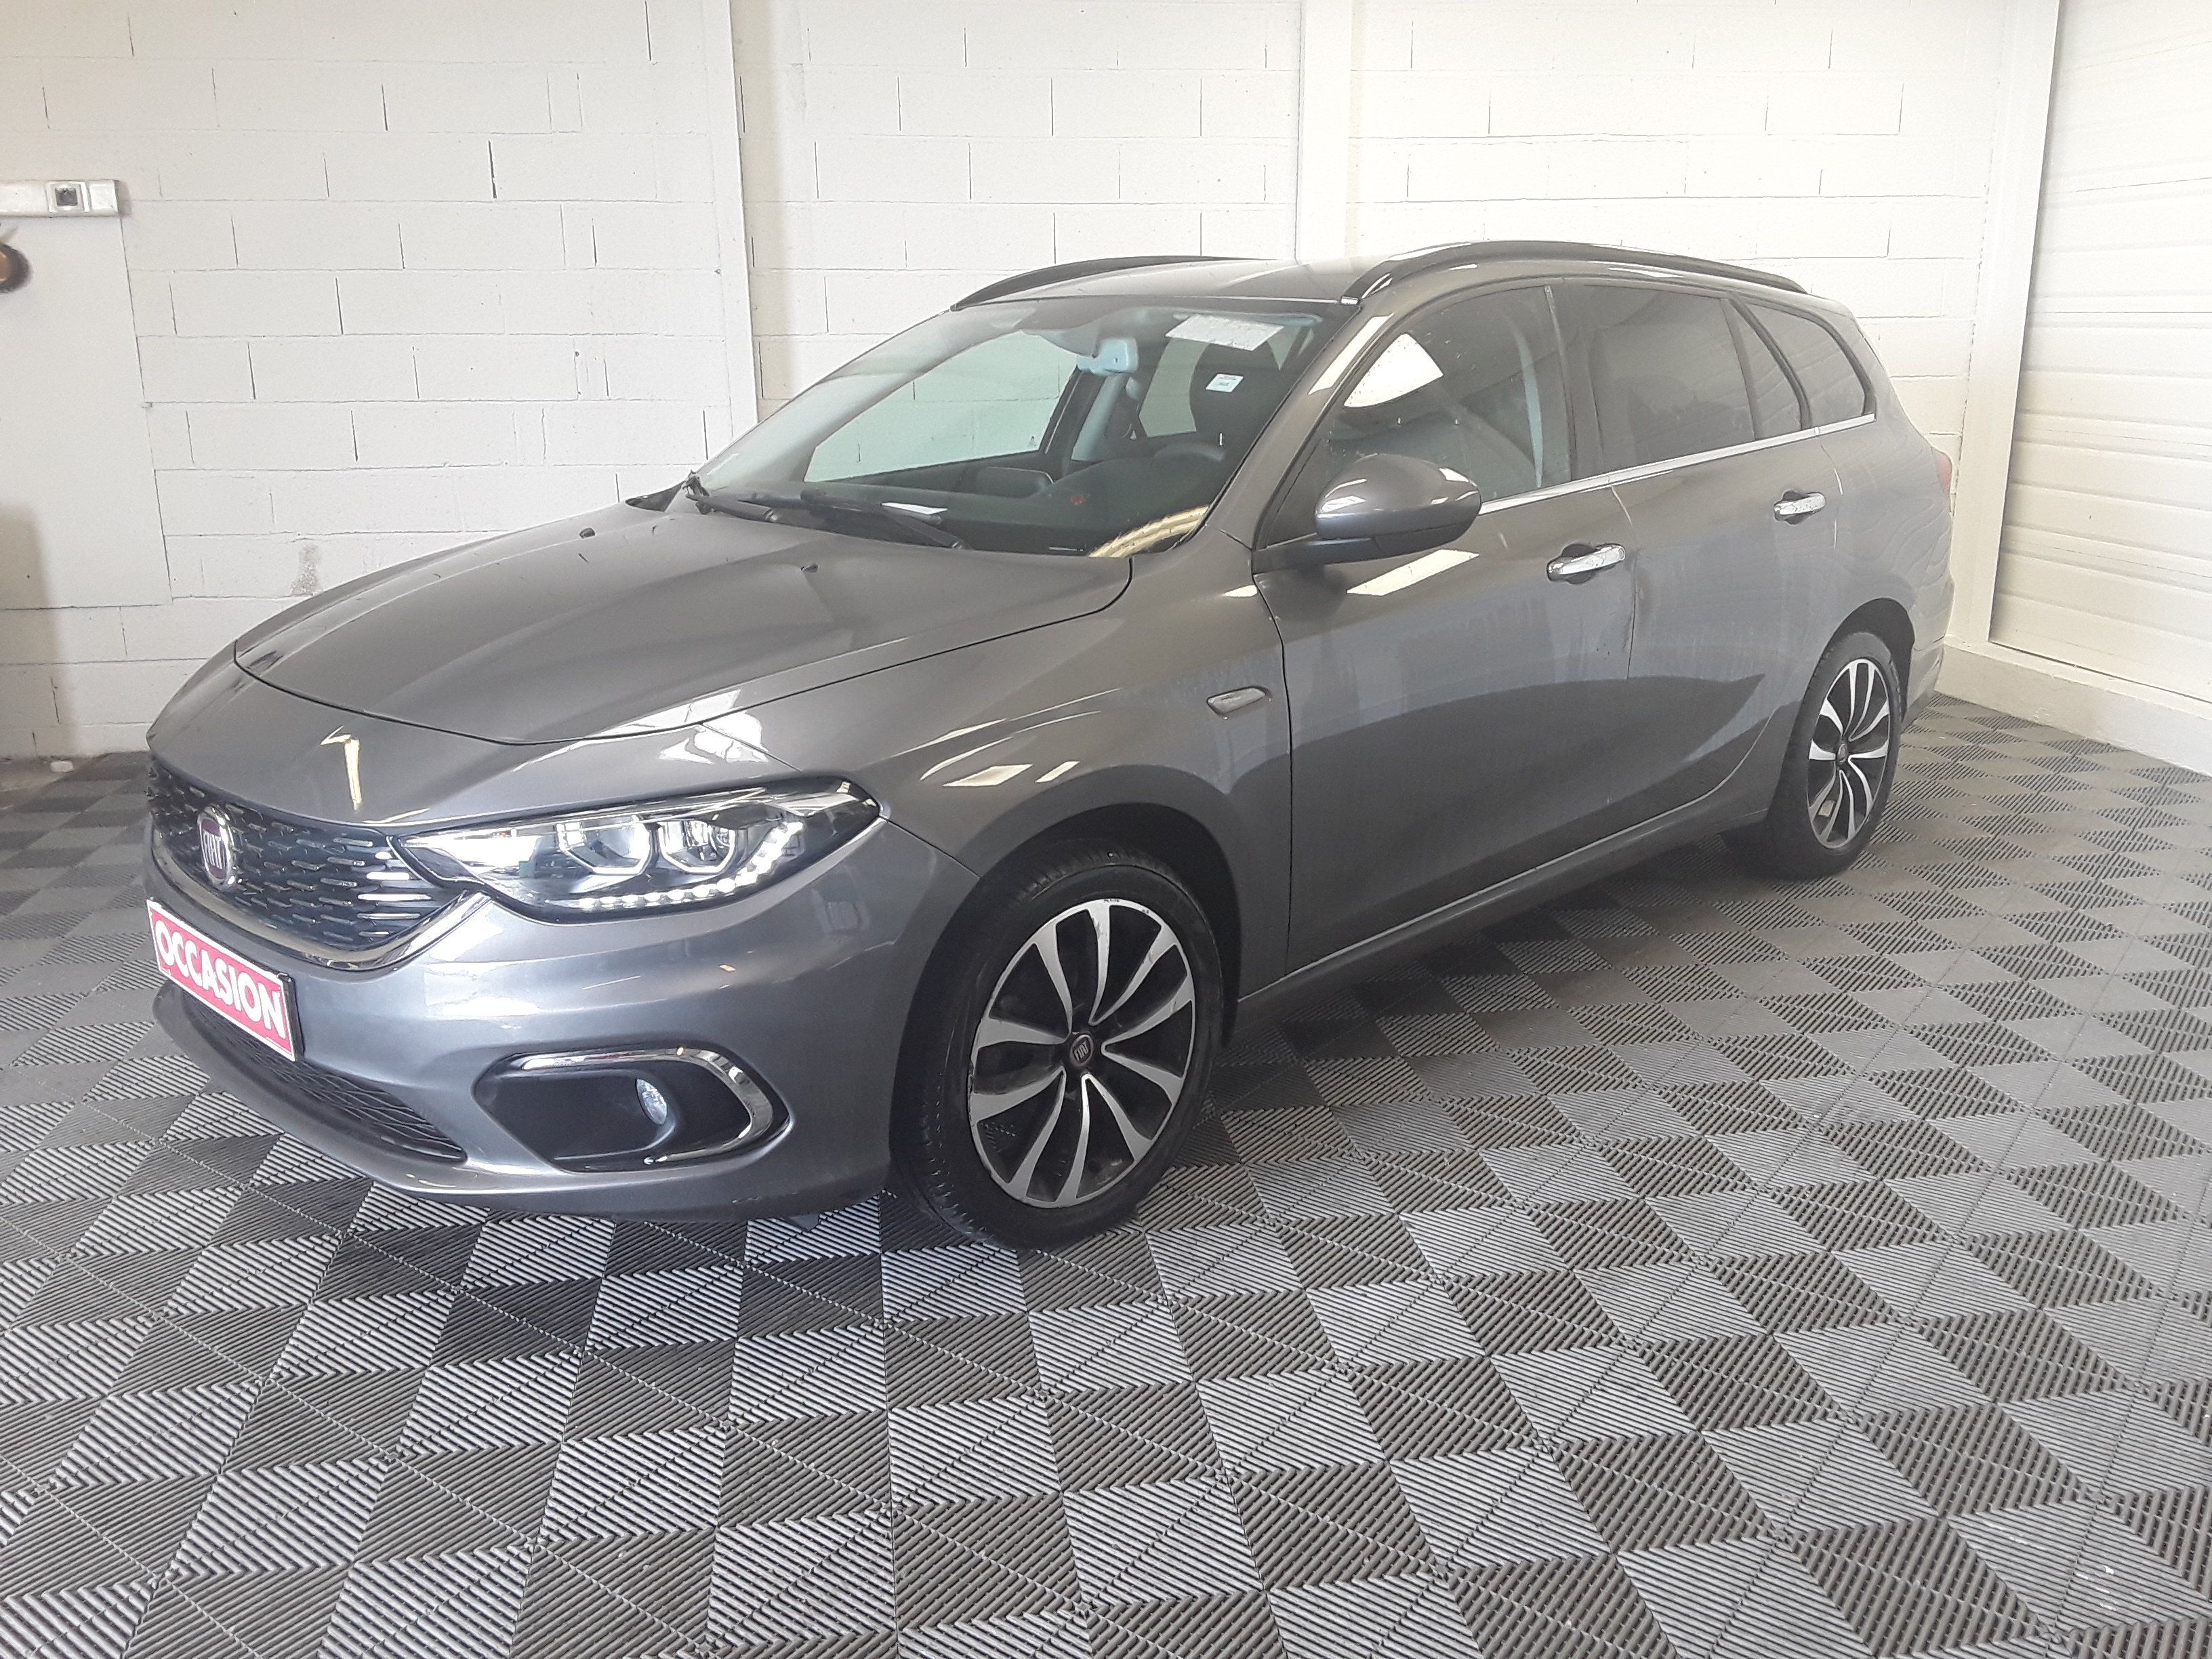 FIAT TIPO STATION WAGON 1.6 MULTIJET 120CV LOUNGE d'occasion